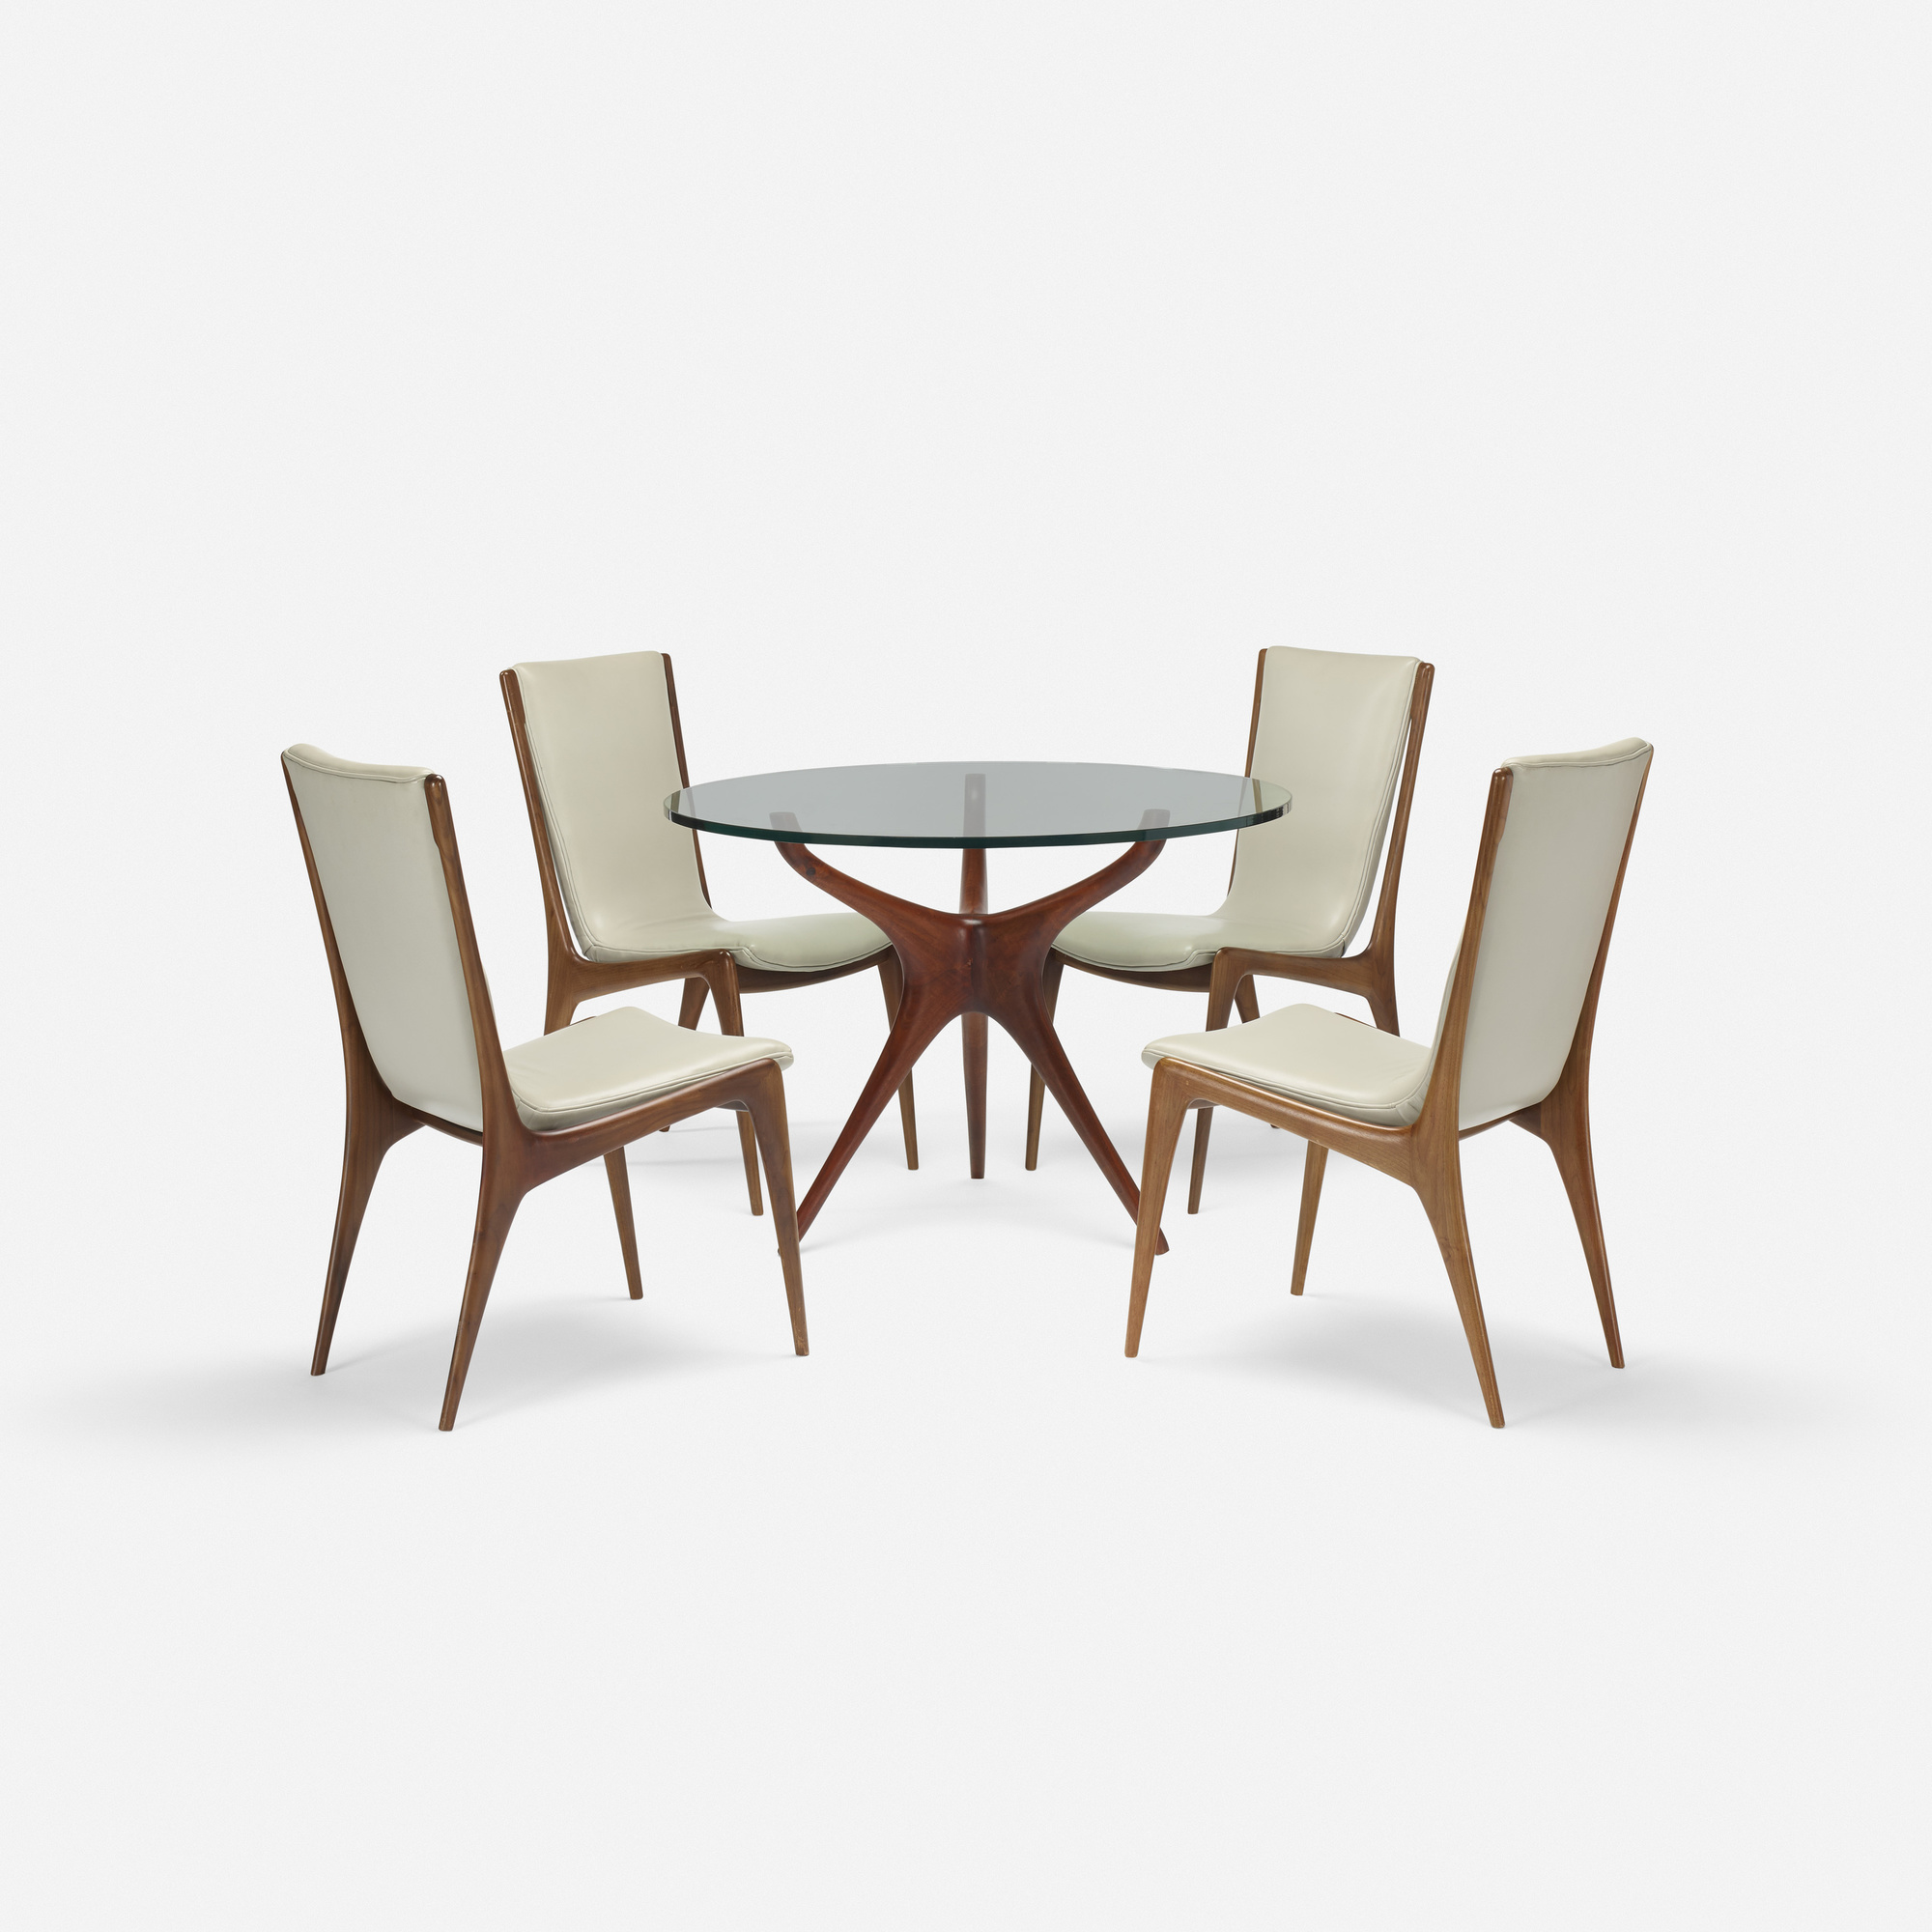 354: Vladimir Kagan / Tri-symmetric dining table (2 of 3)